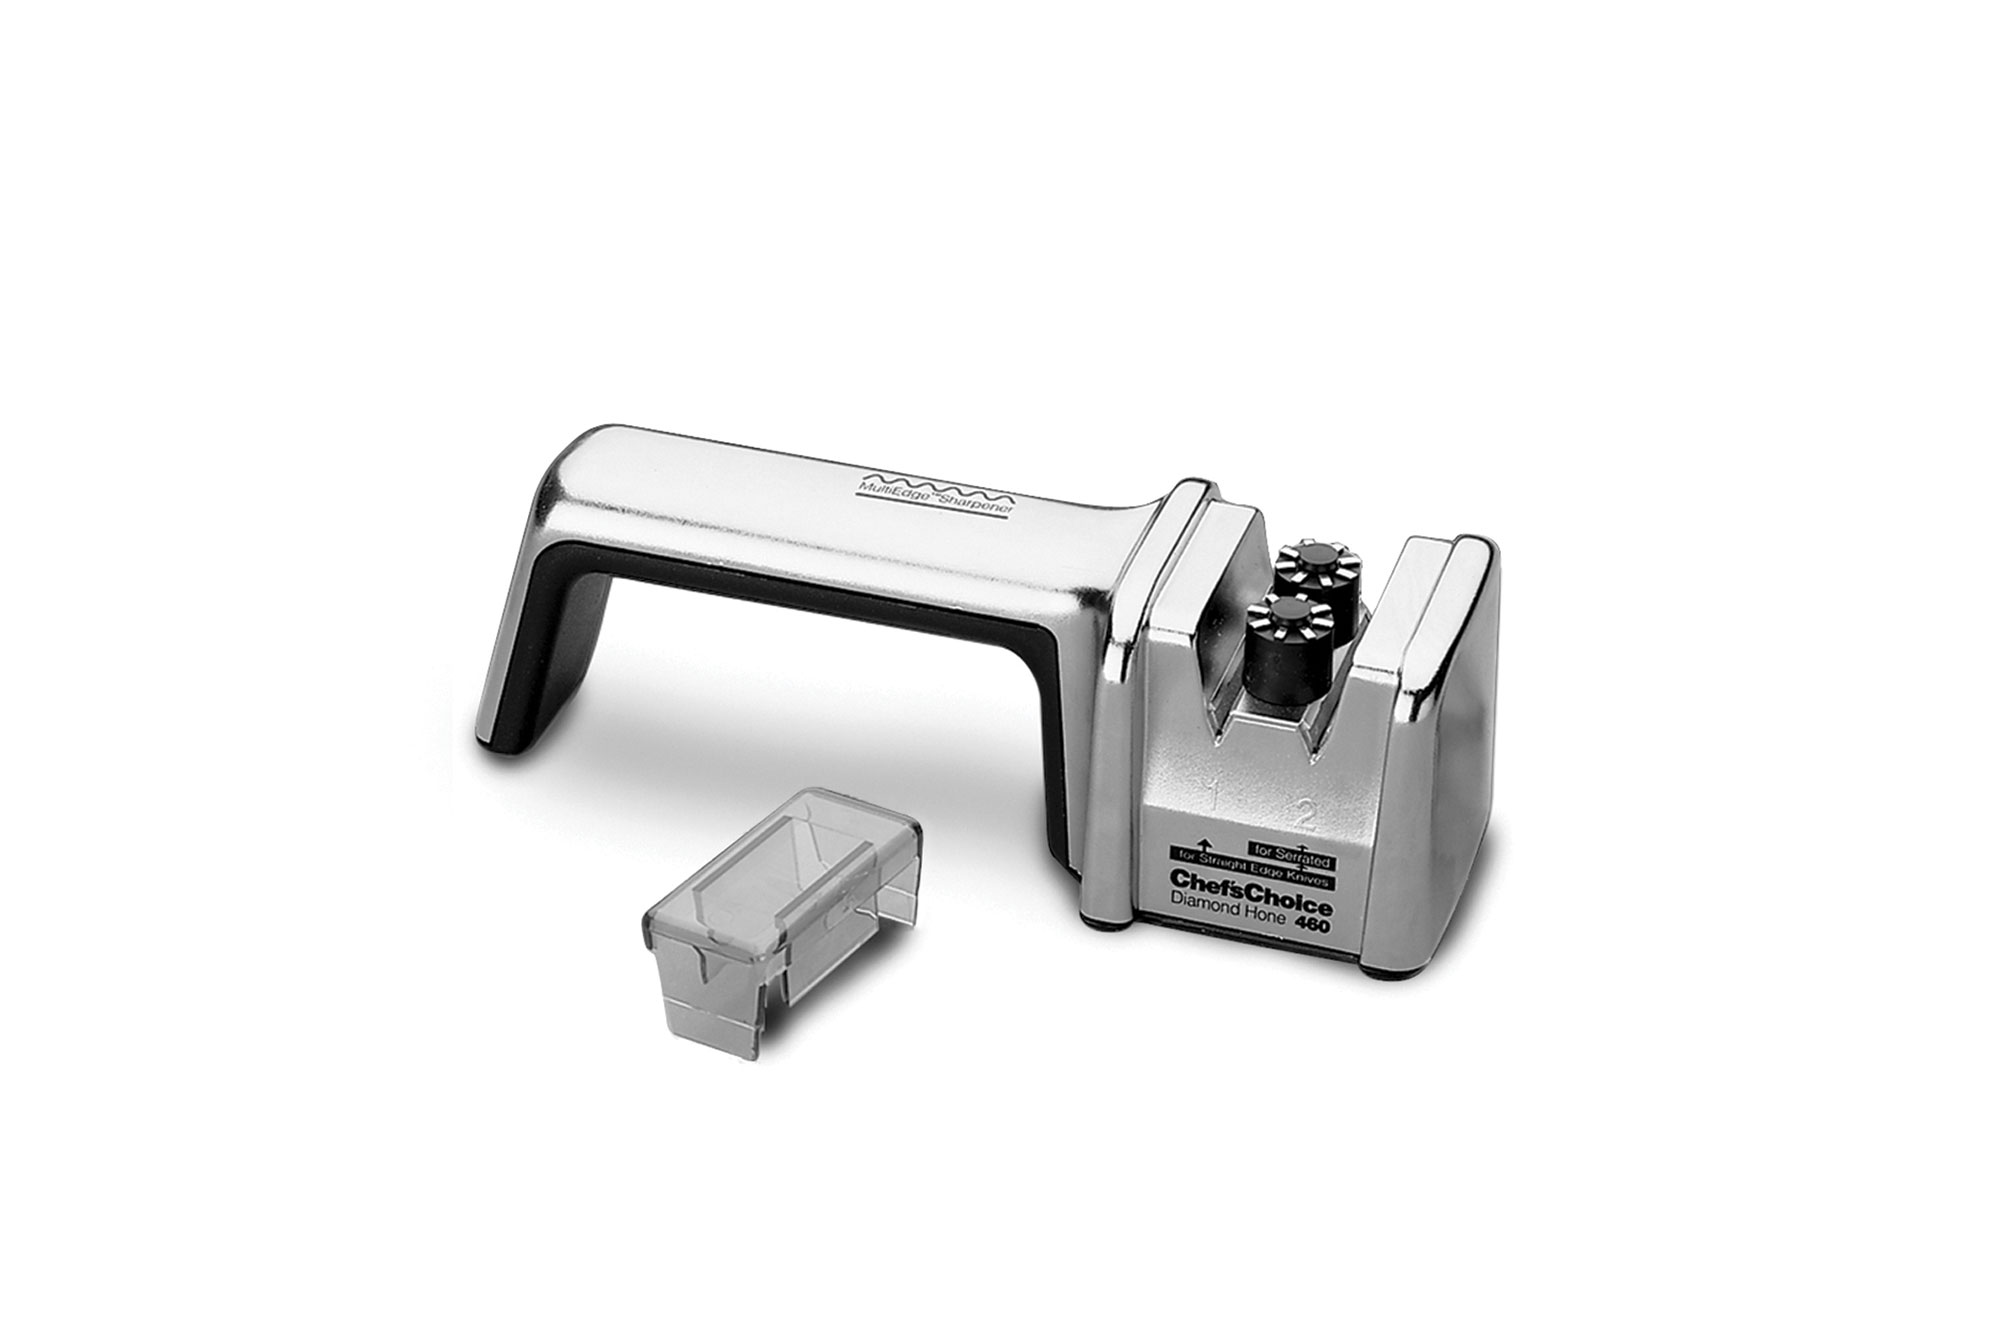 crofton manual knife sharpener review